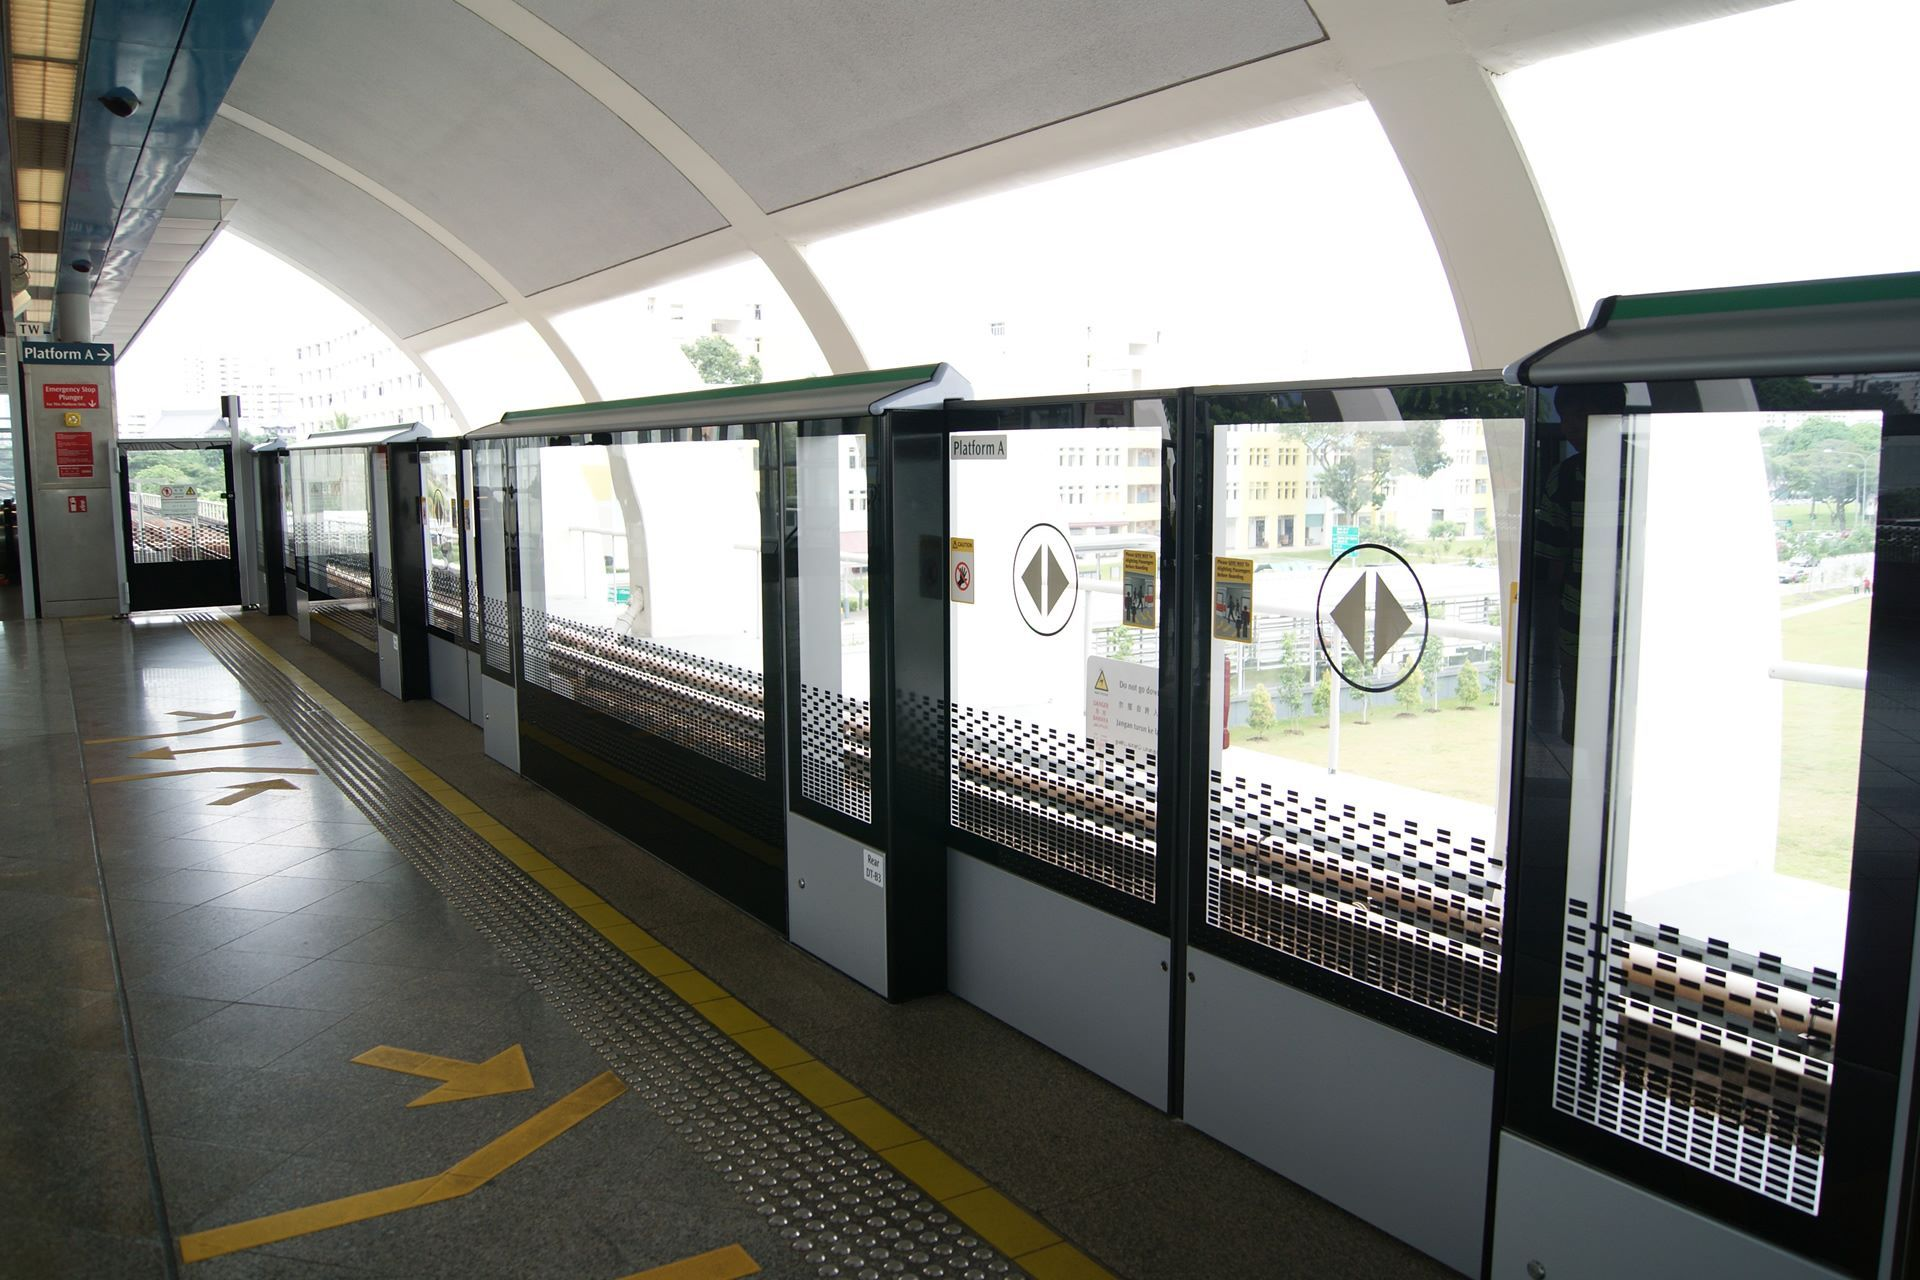 Quite a while back, MRT Stations in Singapore installed ...